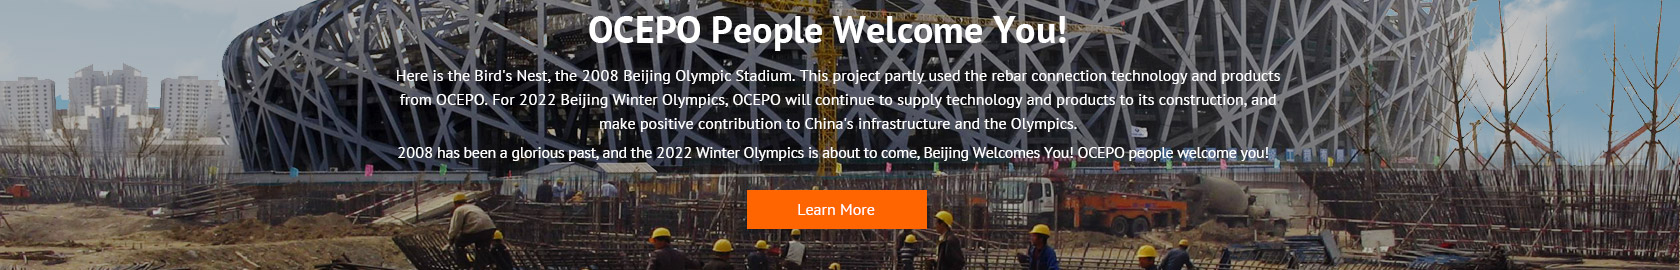 OCEPO people welcome you